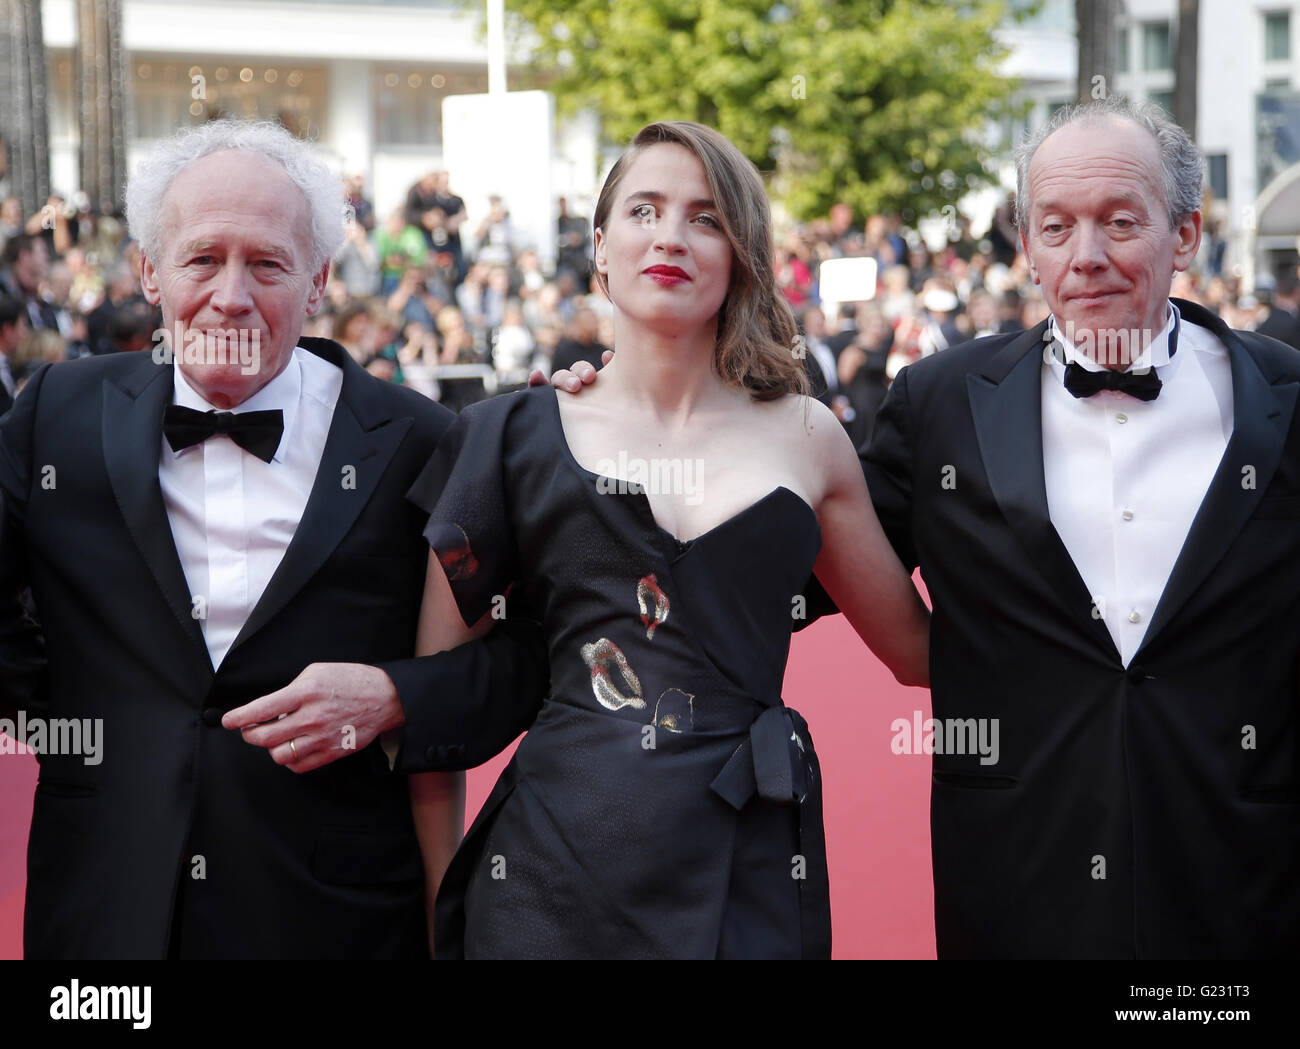 director Jean-Pierre Dardenne, actress Adele Haenel and director Luc Dardenne, from left, pose for photographers - Stock Image